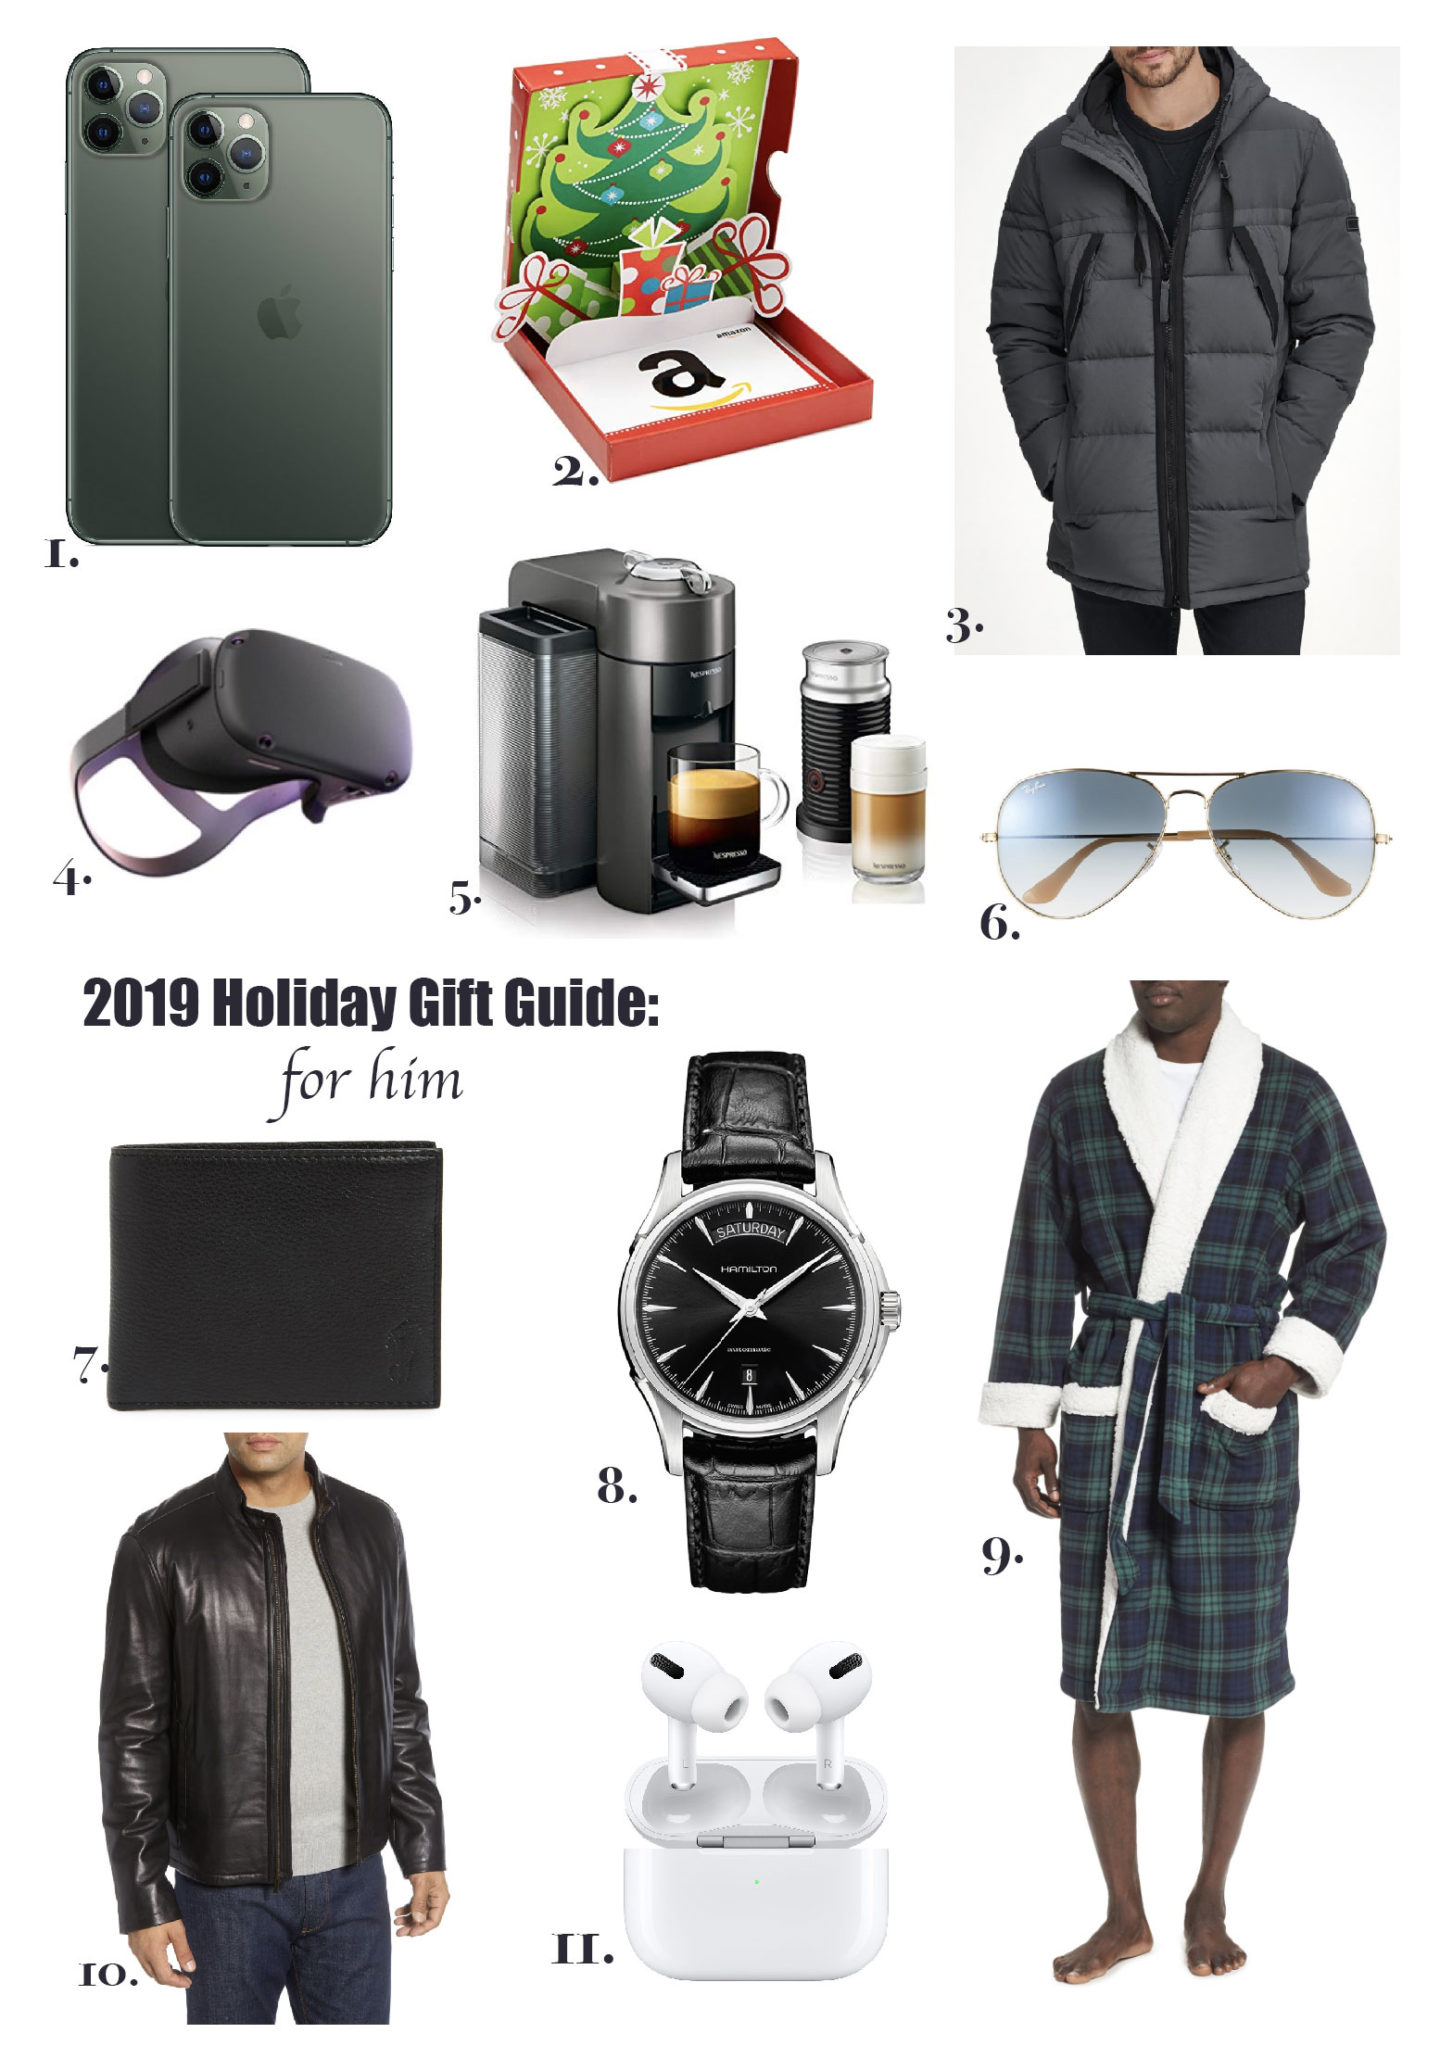 gift guide, 2019 gift ideas for men, gift guide, christmas, birthday, holiday, present, gift guide for him, gift guide for husband, gift guide for boyfriend, gift guide for dad